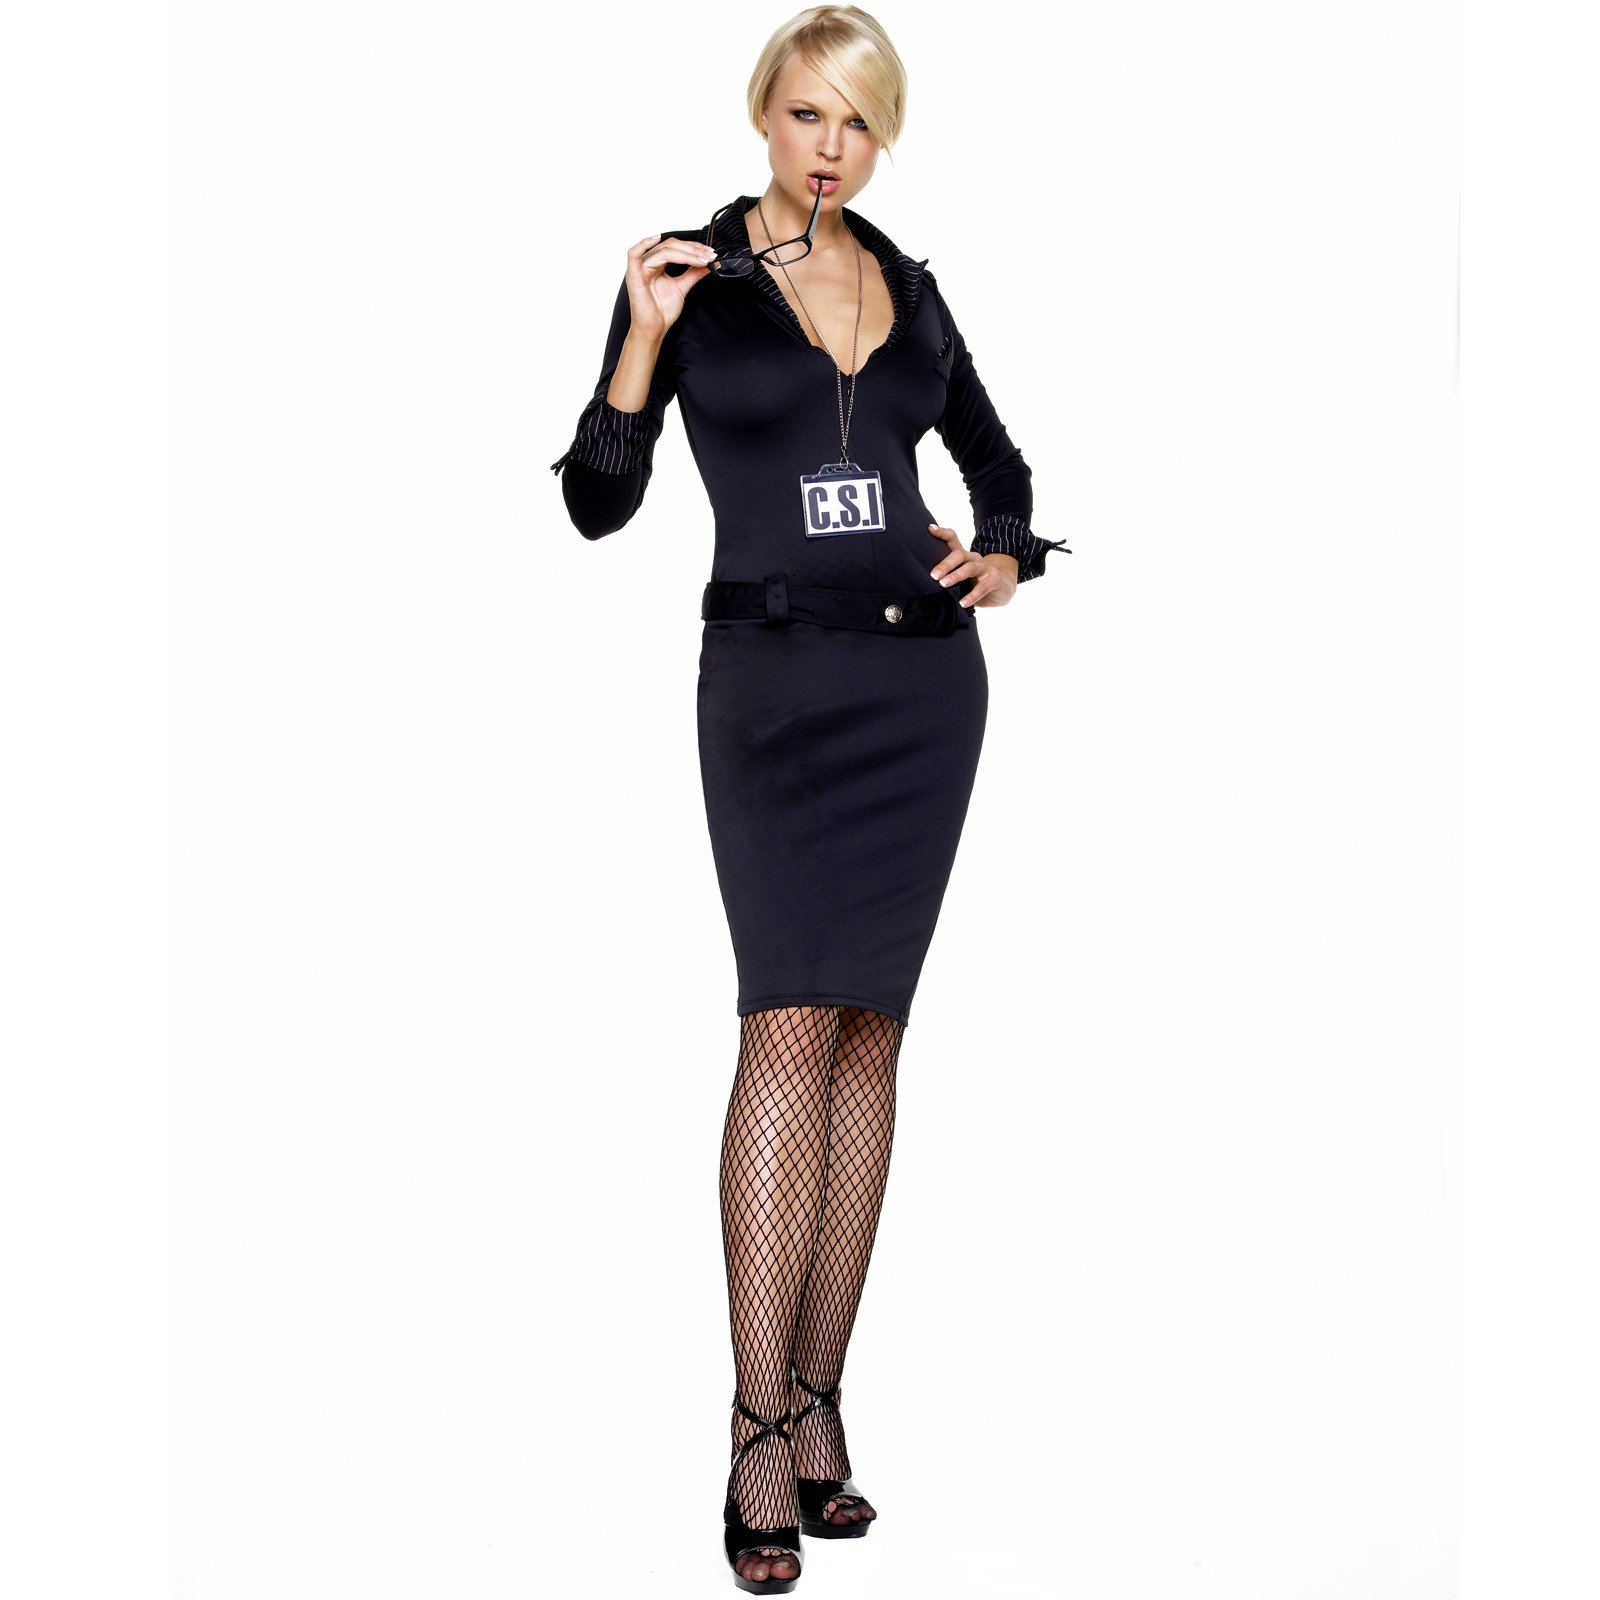 Office worker Sabrina Moore posing fully clothed in business outfit  234752